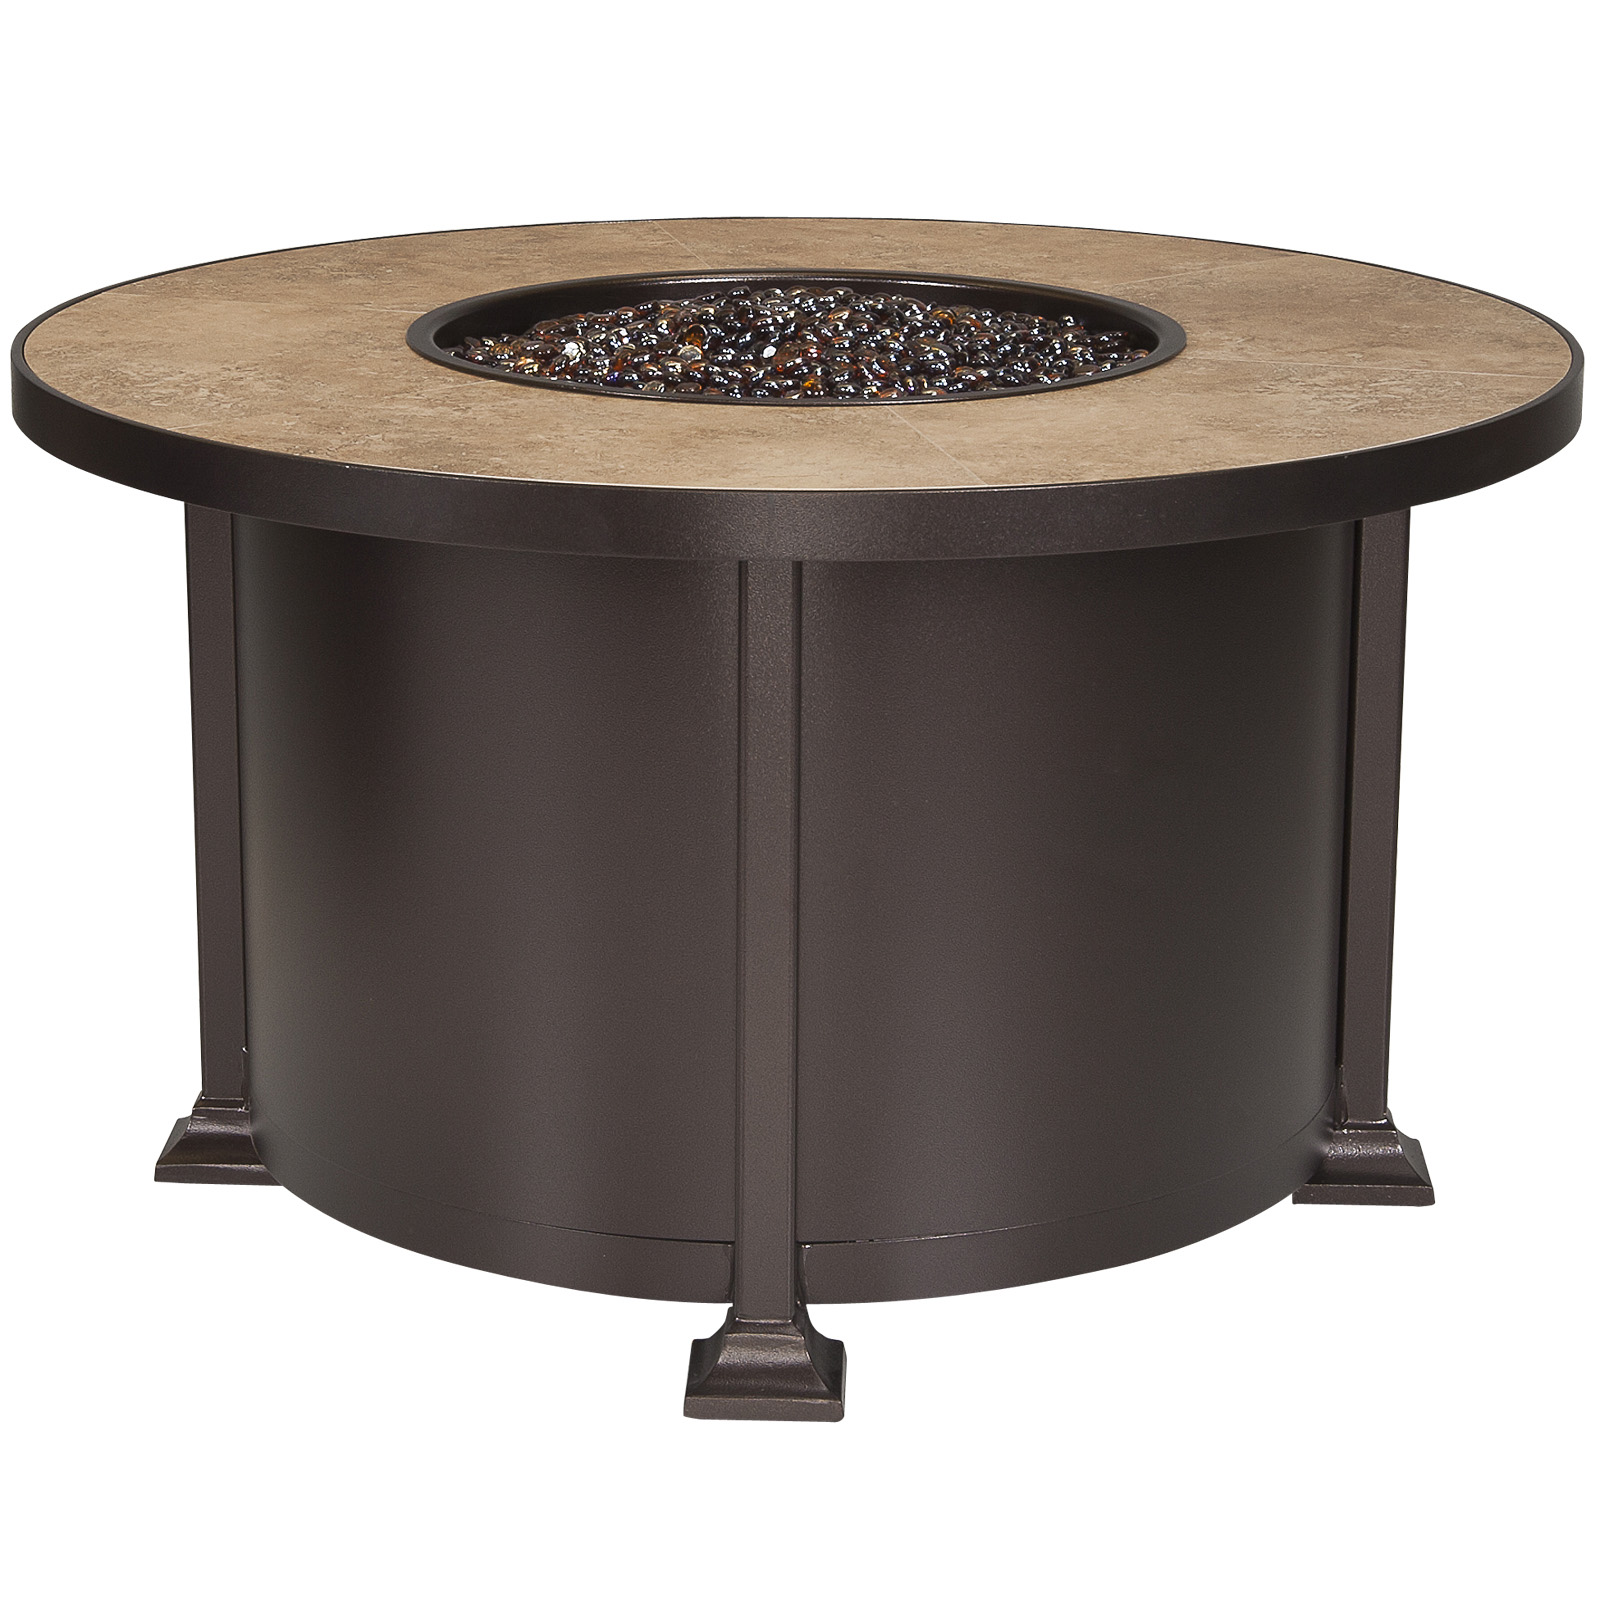 Ow Lee Vulsini 42 Quot Round Chat Fire Pit Table 51 22a